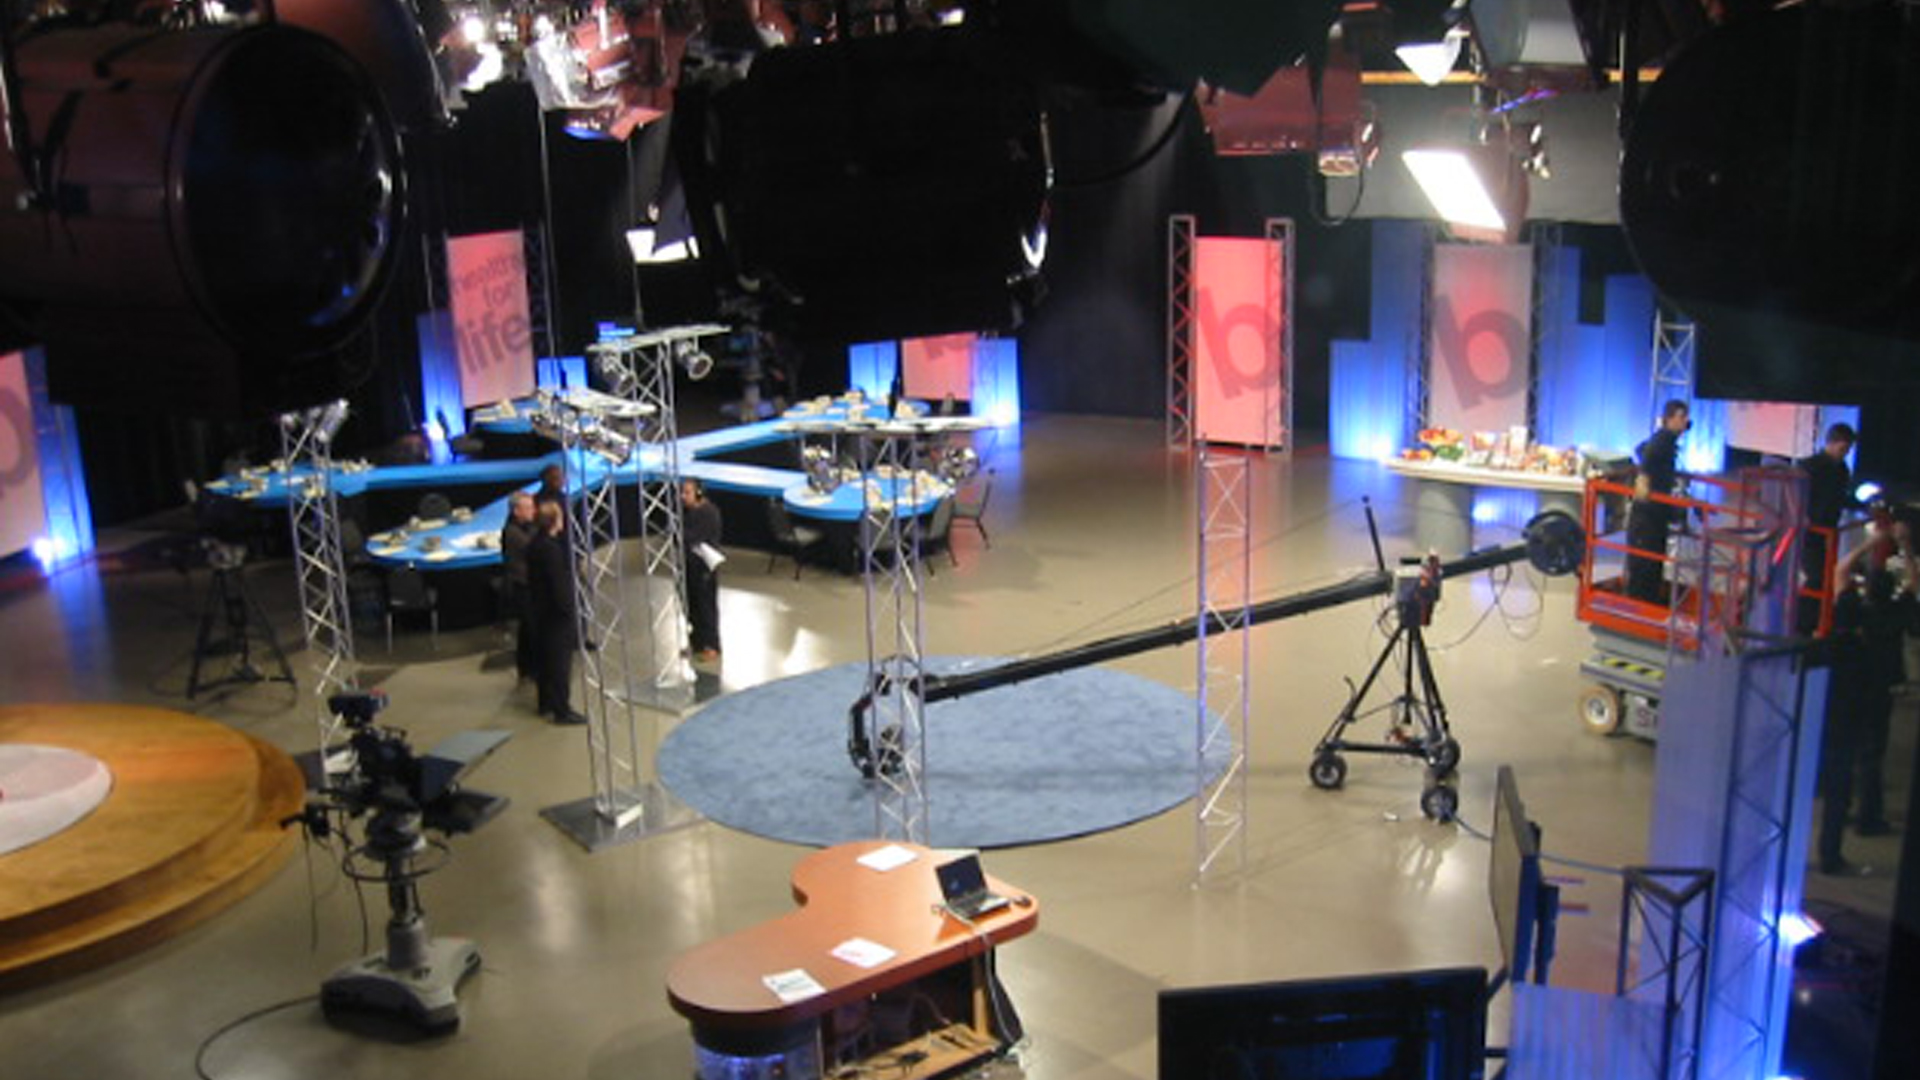 Behind the scenes in the WNED-TV studio as the crew works on lighting.